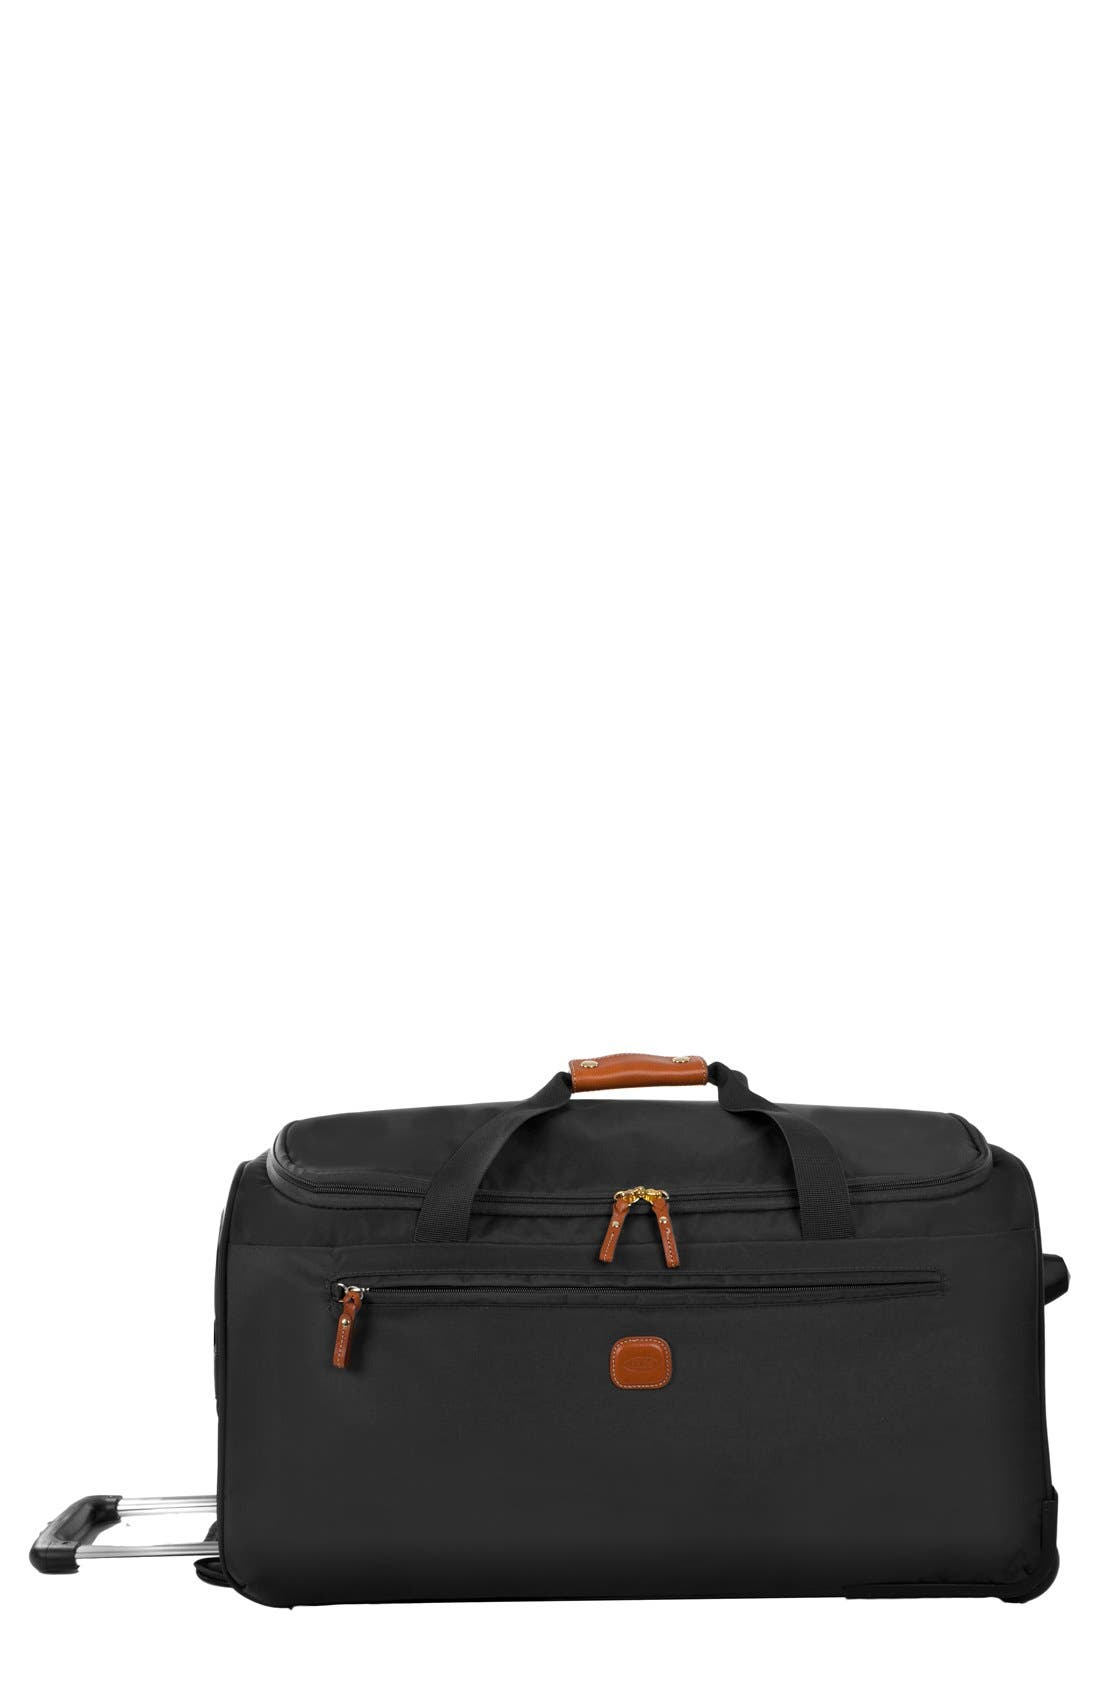 X-Bag 28-Inch Rolling Duffel Bag,                             Main thumbnail 1, color,                             BLACK